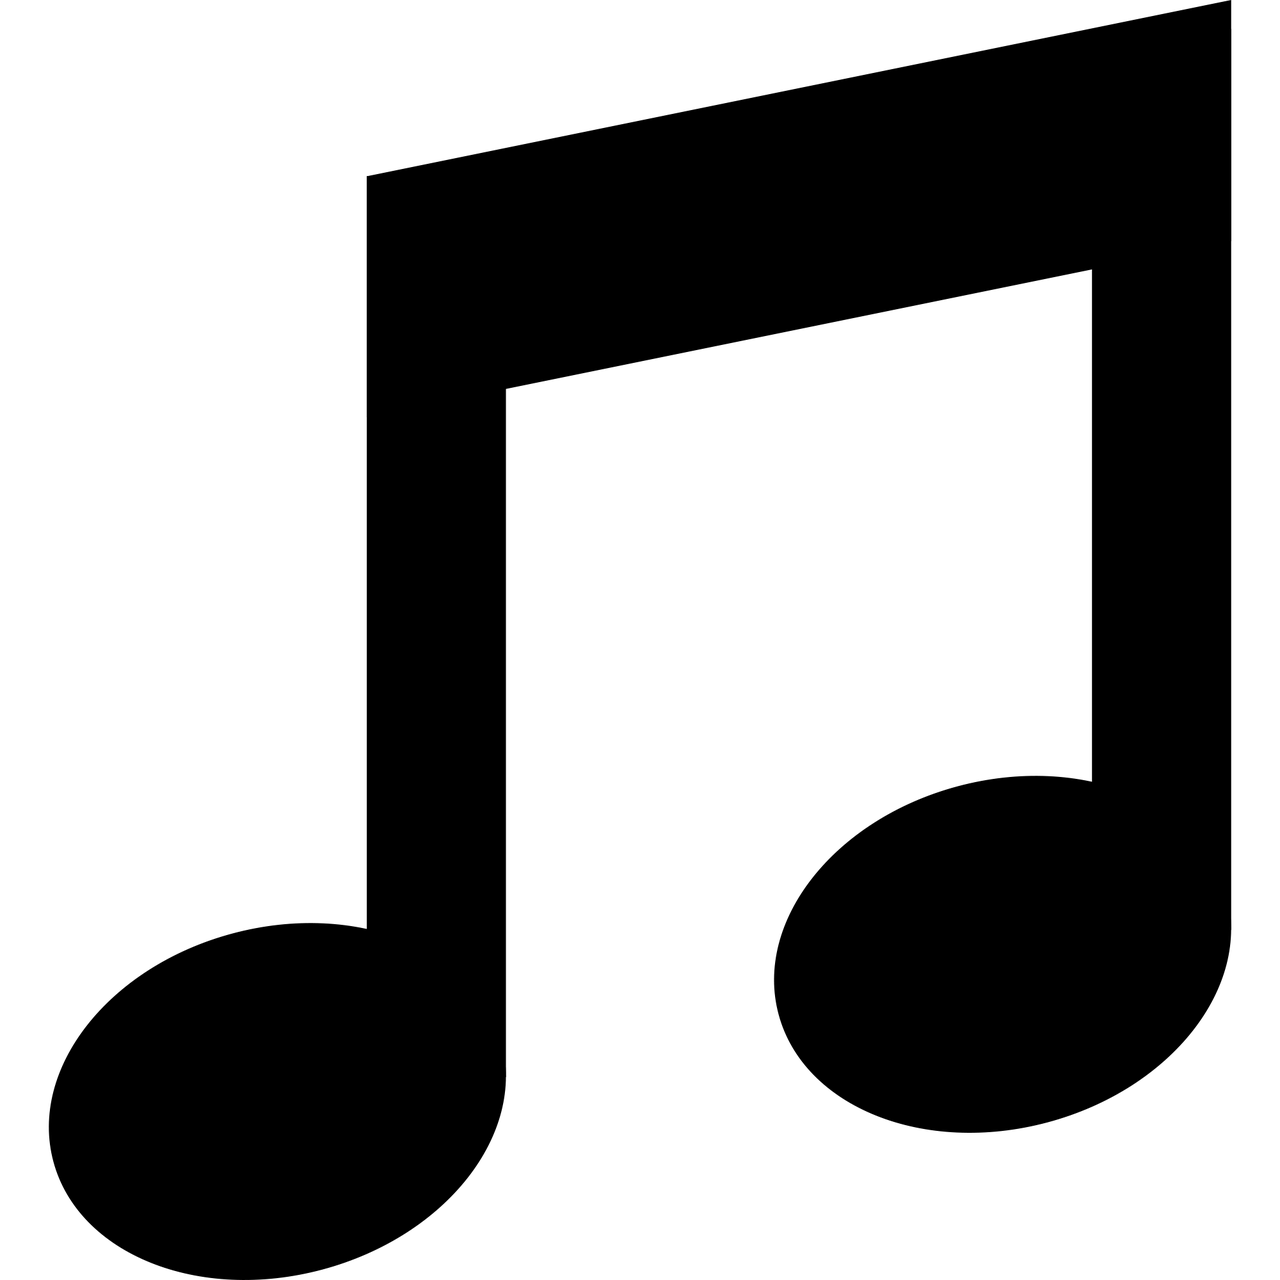 Image result for music note font symbol